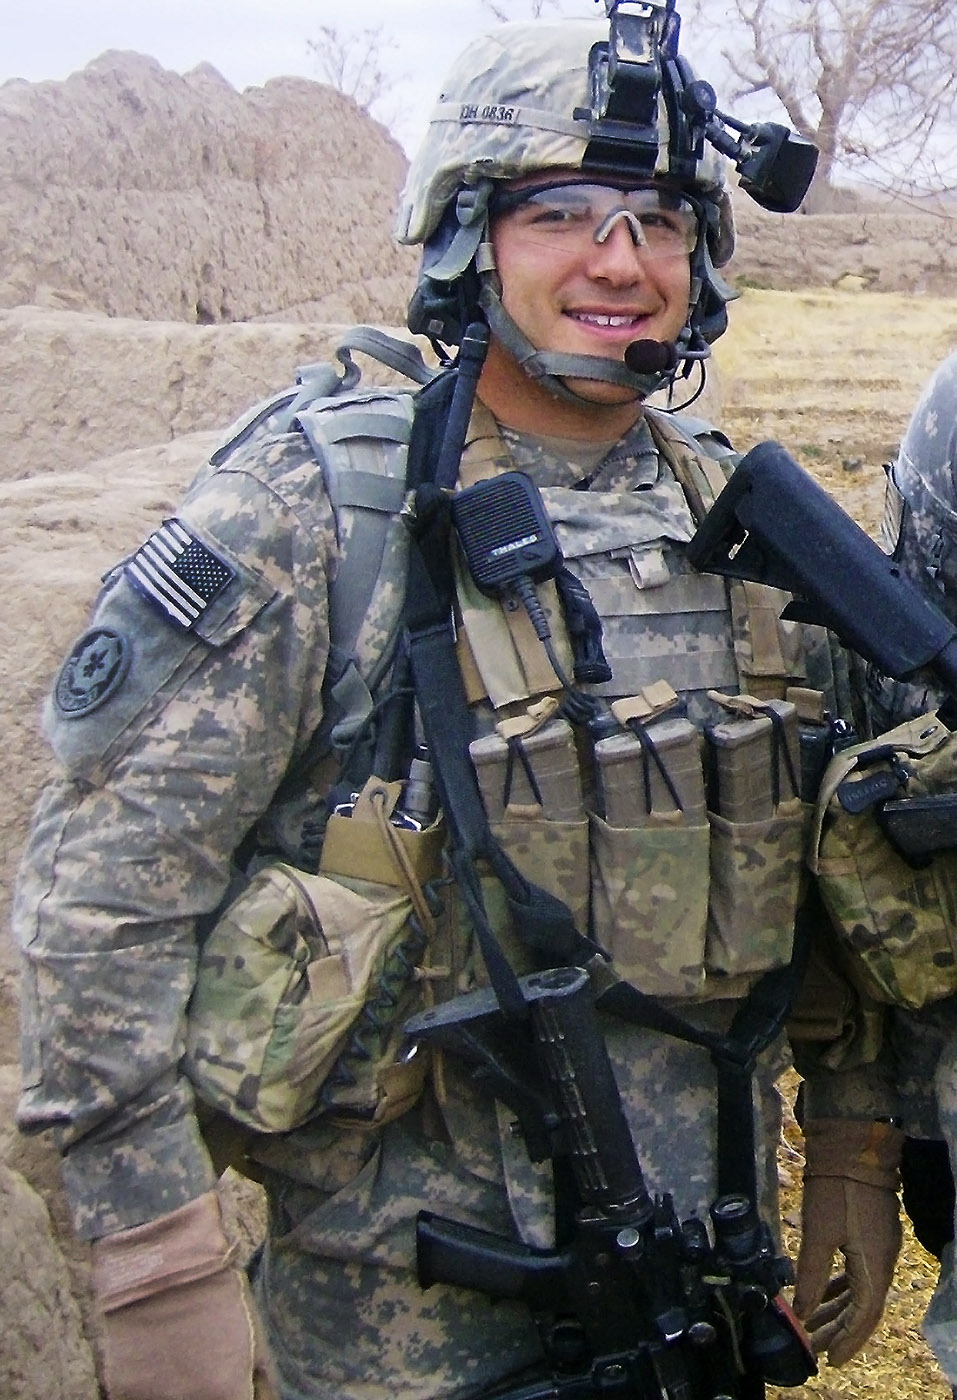 U.S. Army First Lieutenant Daren M. Hidalgo, 24, of Waukesha, Wisconsin, assigned to 3rd Squadron, 2nd Stryker Cavalry Regiment, based in Vilseck, Germany, died on February 20, 2011, in Kandahar province, Afghanistan, from wounds suffered when insurgents attacked his unit with an improvised explosive device. Two weeks prior to his death, he was hit by an earlier improvised explosive device. Despite his injuries, he stayed in country and on patrols rather than return home. He is survived by his father Jorge, mother Andrea, brothers Miles and Jared, and sister Carmen.